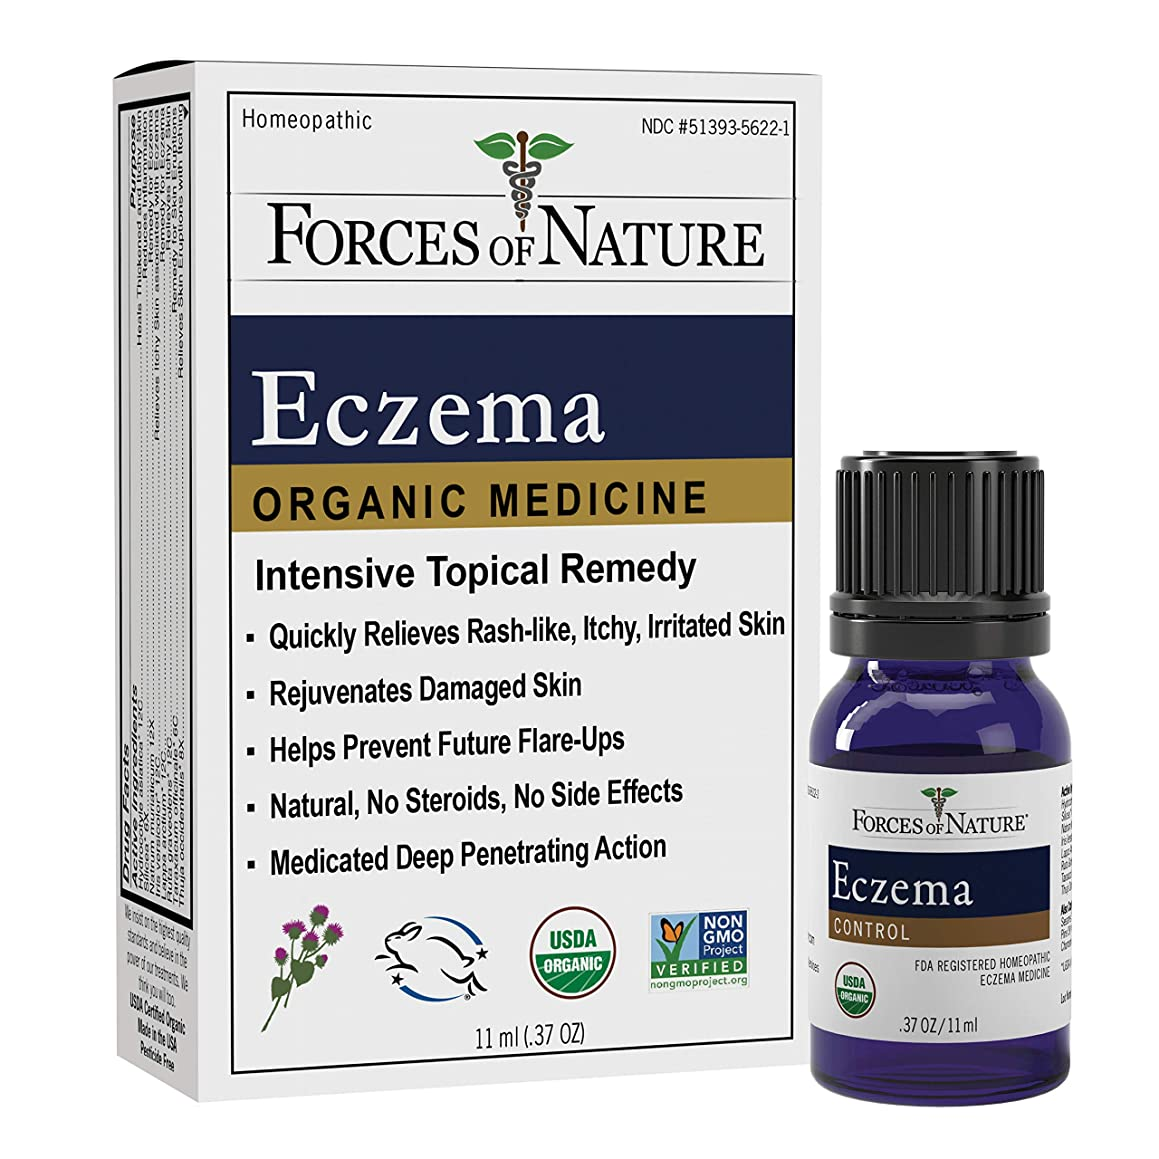 Forces of Nature | Eczema Control | Certified Organic | FDA-registered | Pharmaceutical Strength | 11ml (Pack of 1)